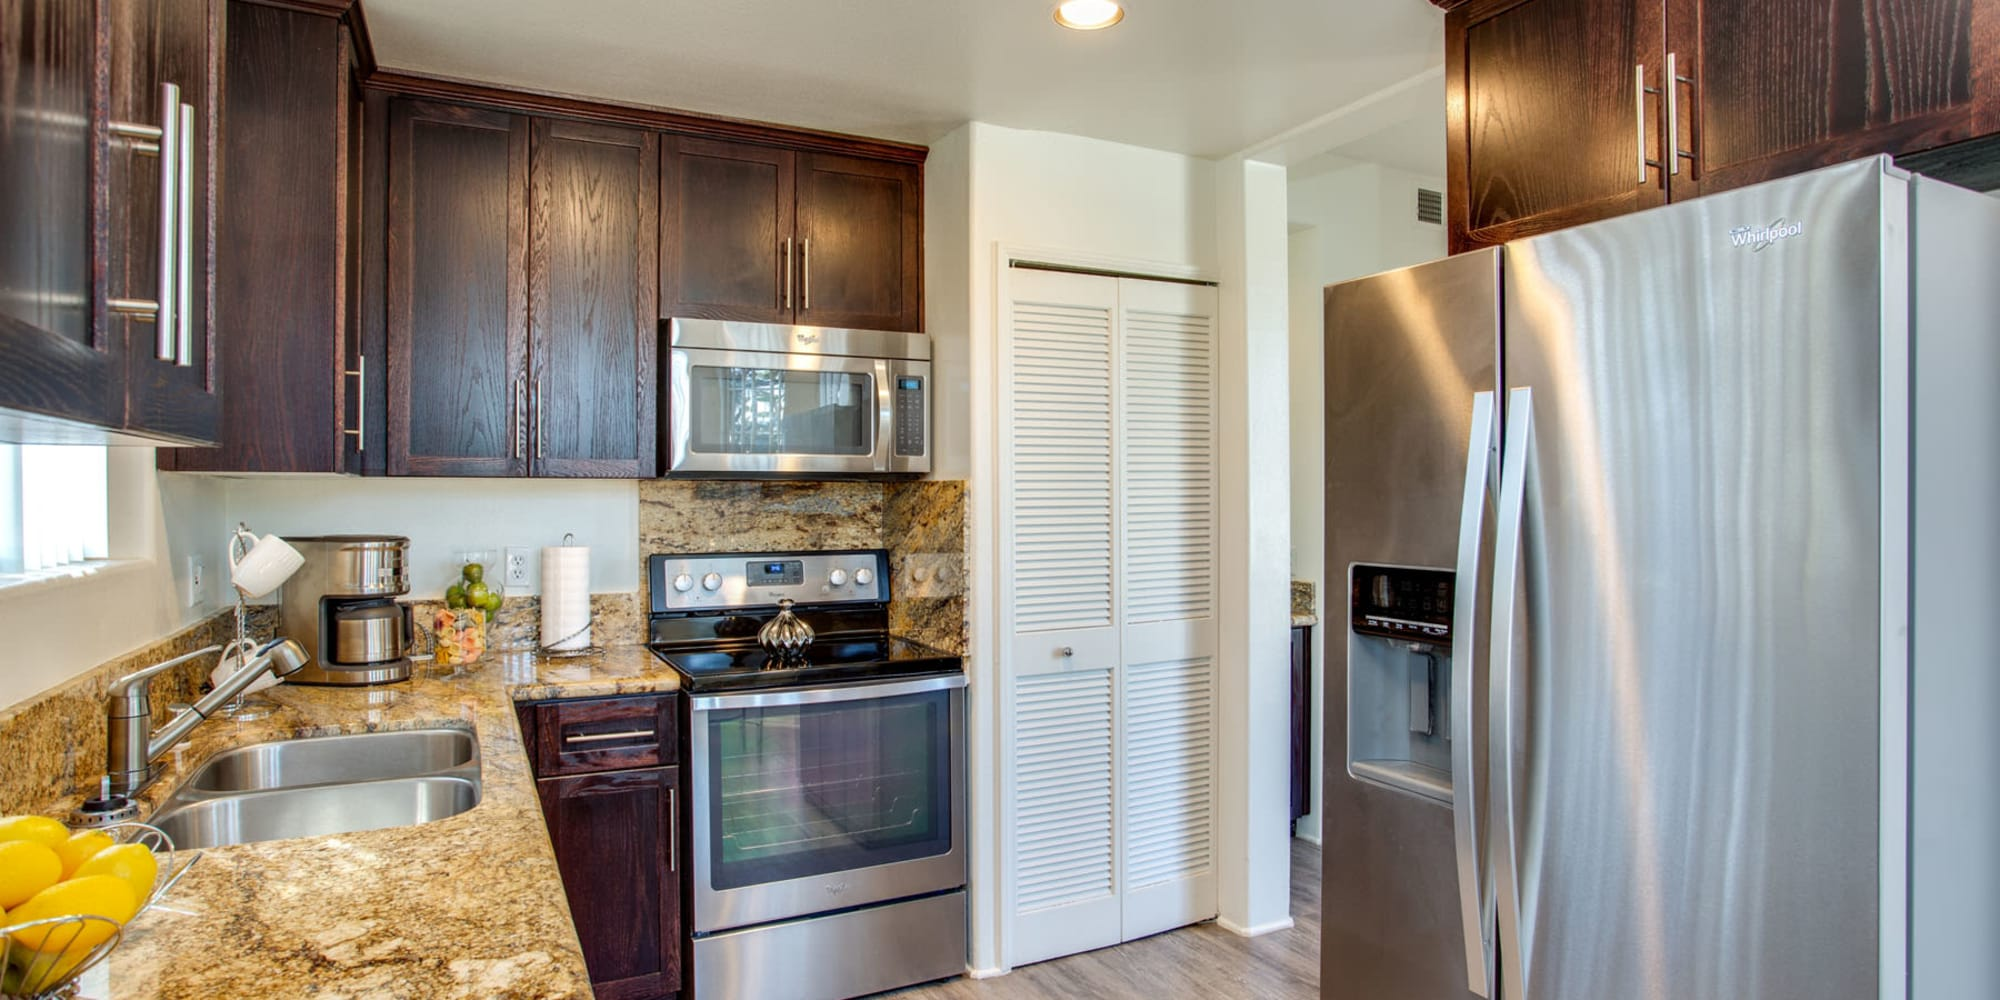 Stainless-steel appliances and a dual-basin sink in a model home's kitchen at L'Estancia in Studio City, California